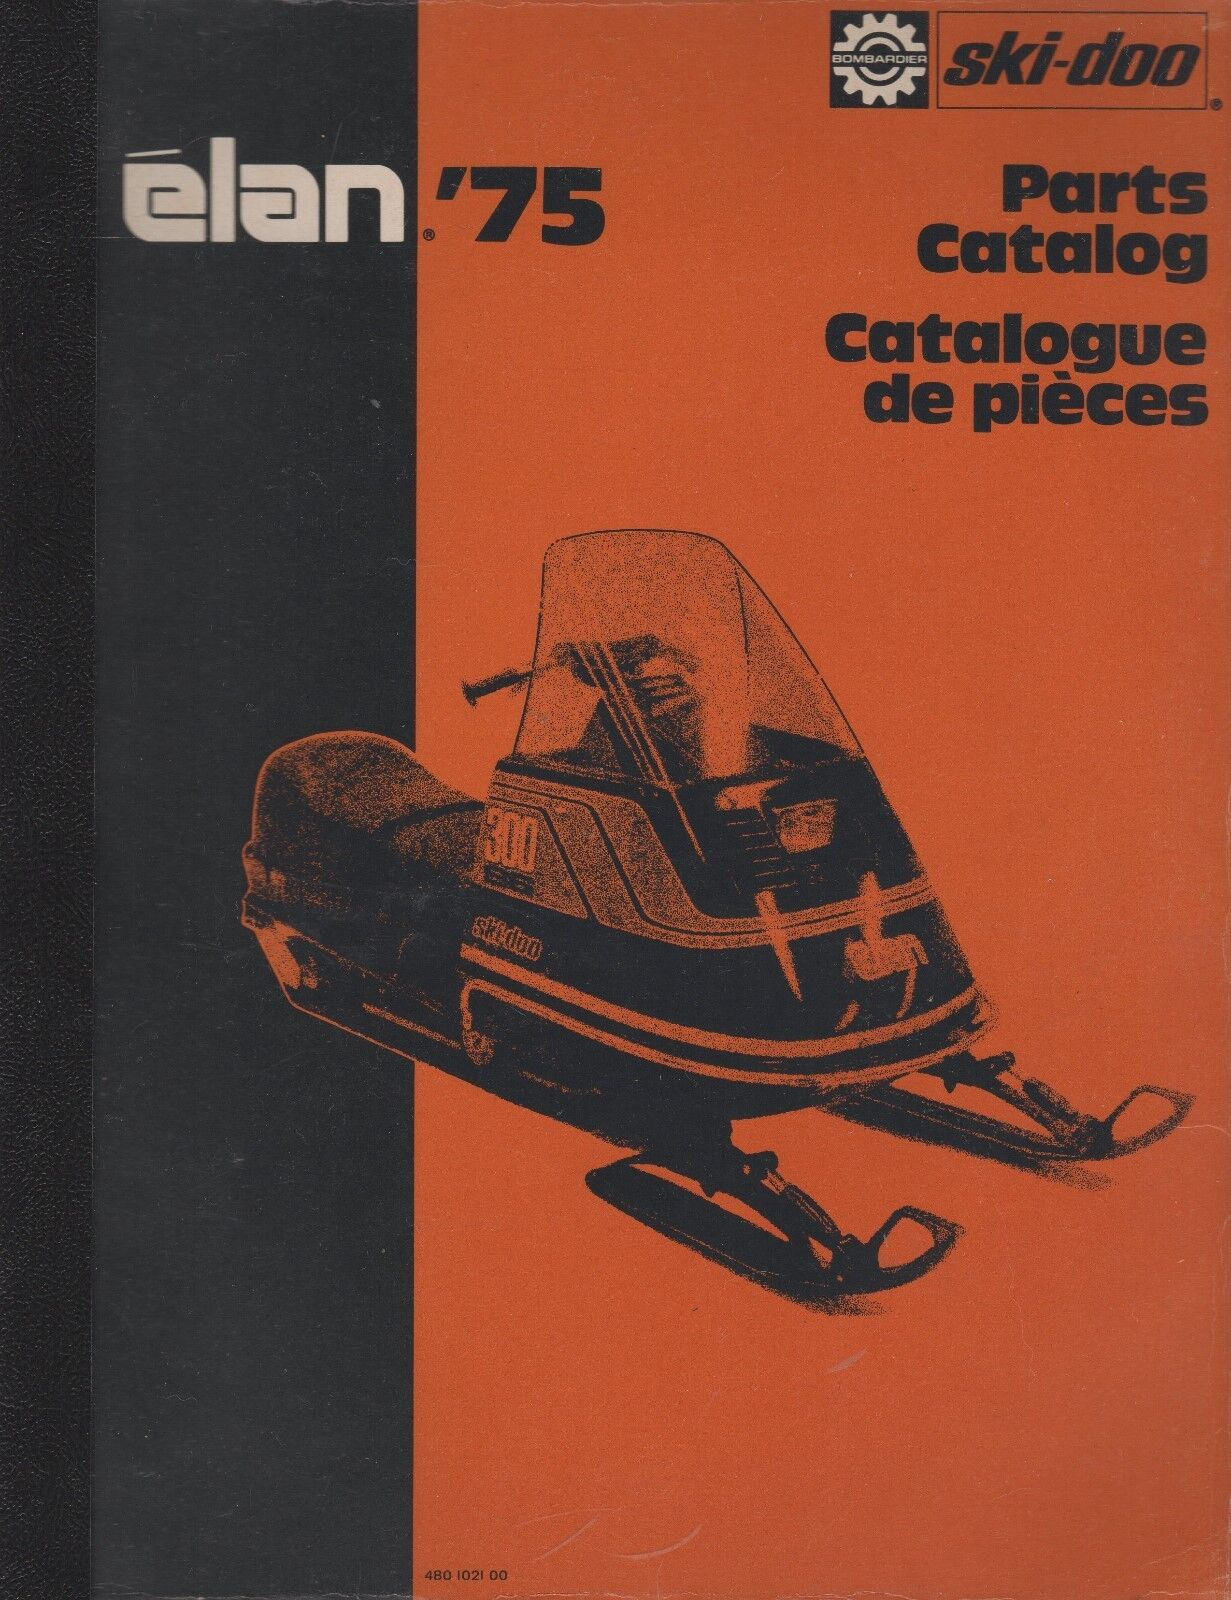 1975 SKI-DOO ELAN SNOWMOBILE PARTS MANUAL 480 1021 00 (583)